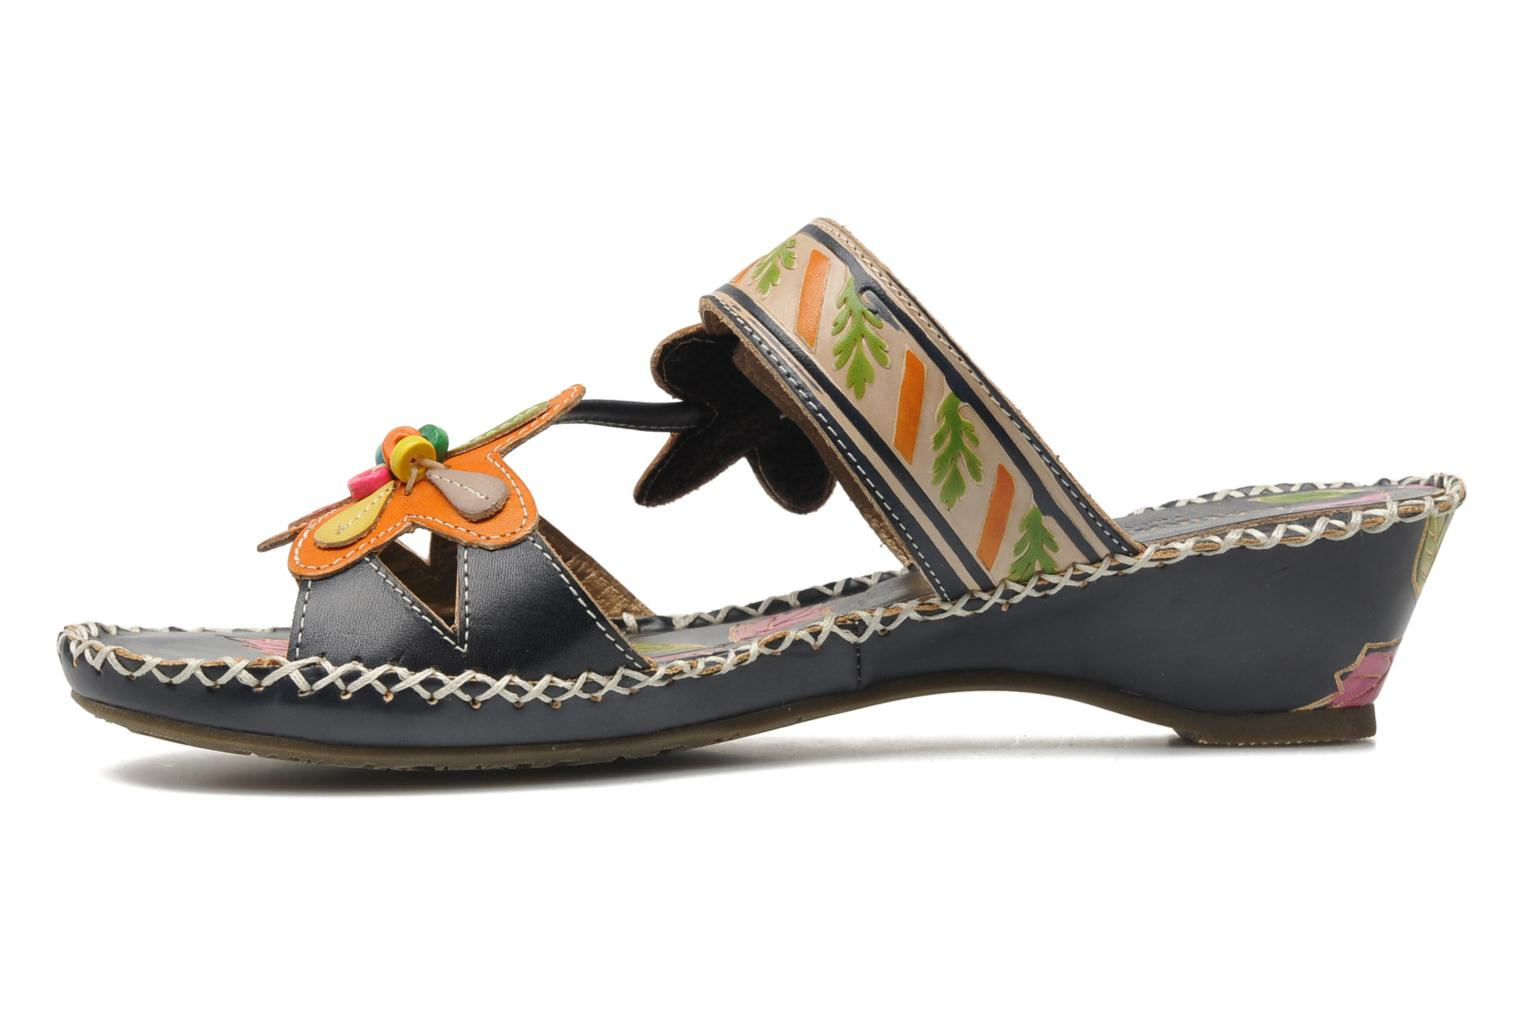 laura vita peggie mules clogs in multicolor at 178246. Black Bedroom Furniture Sets. Home Design Ideas